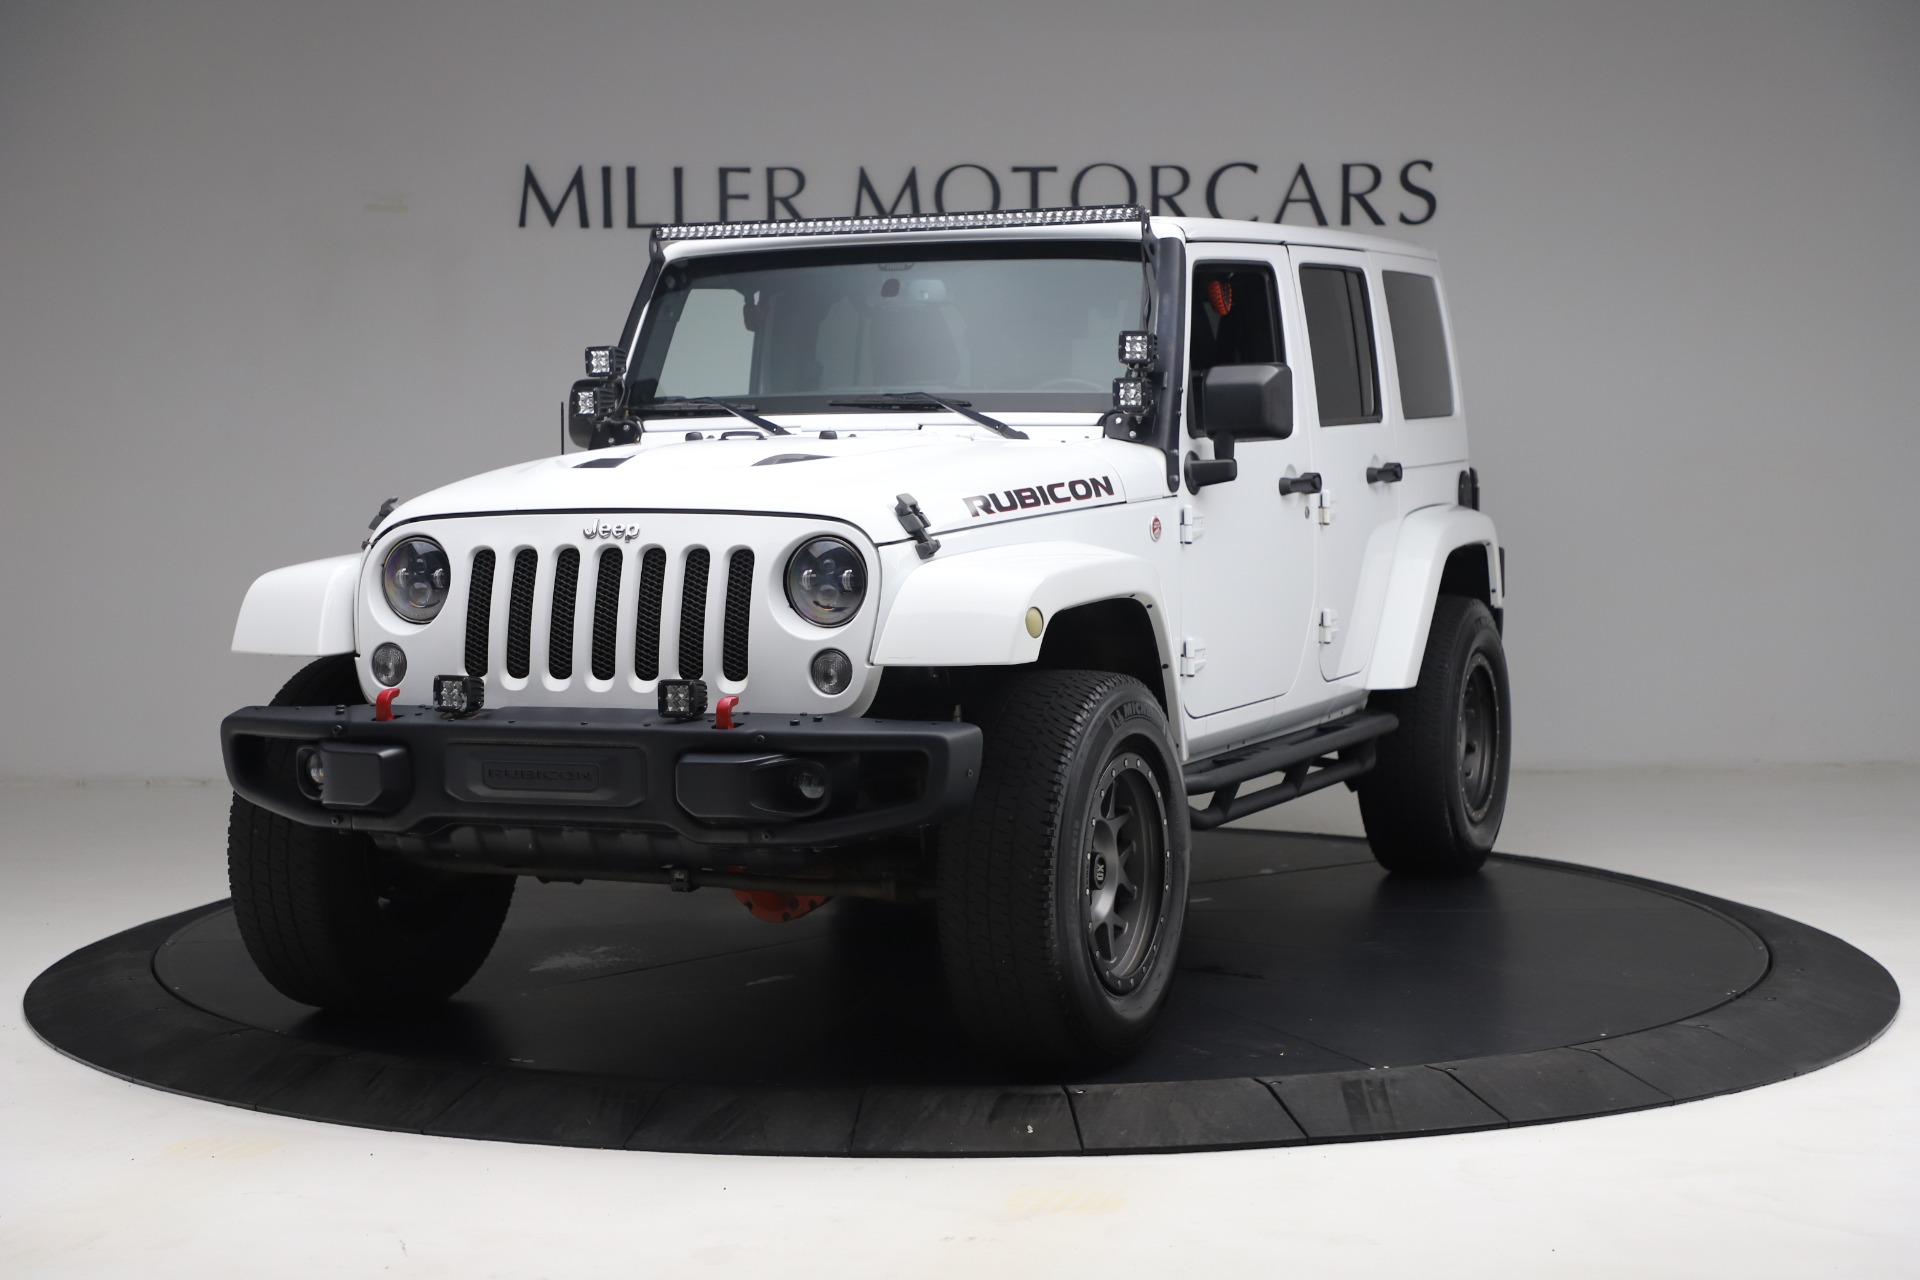 Used 2015 Jeep Wrangler Unlimited Rubicon Hard Rock for sale $39,900 at Bentley Greenwich in Greenwich CT 06830 1